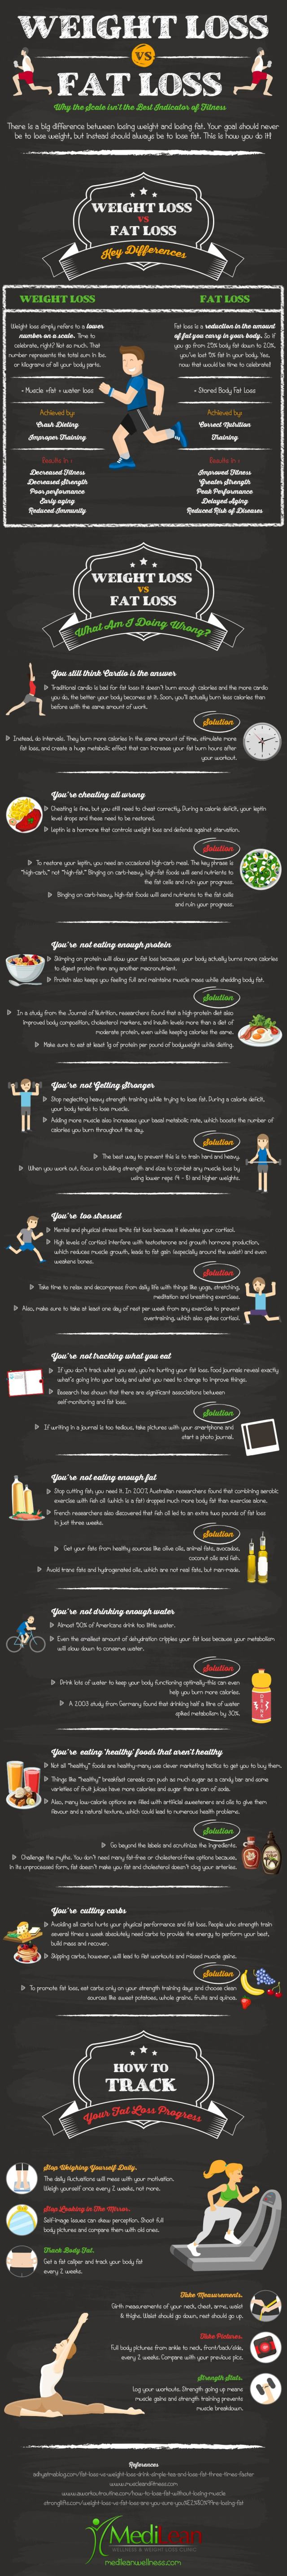 How to Properly Track Your Fat Loss Progress